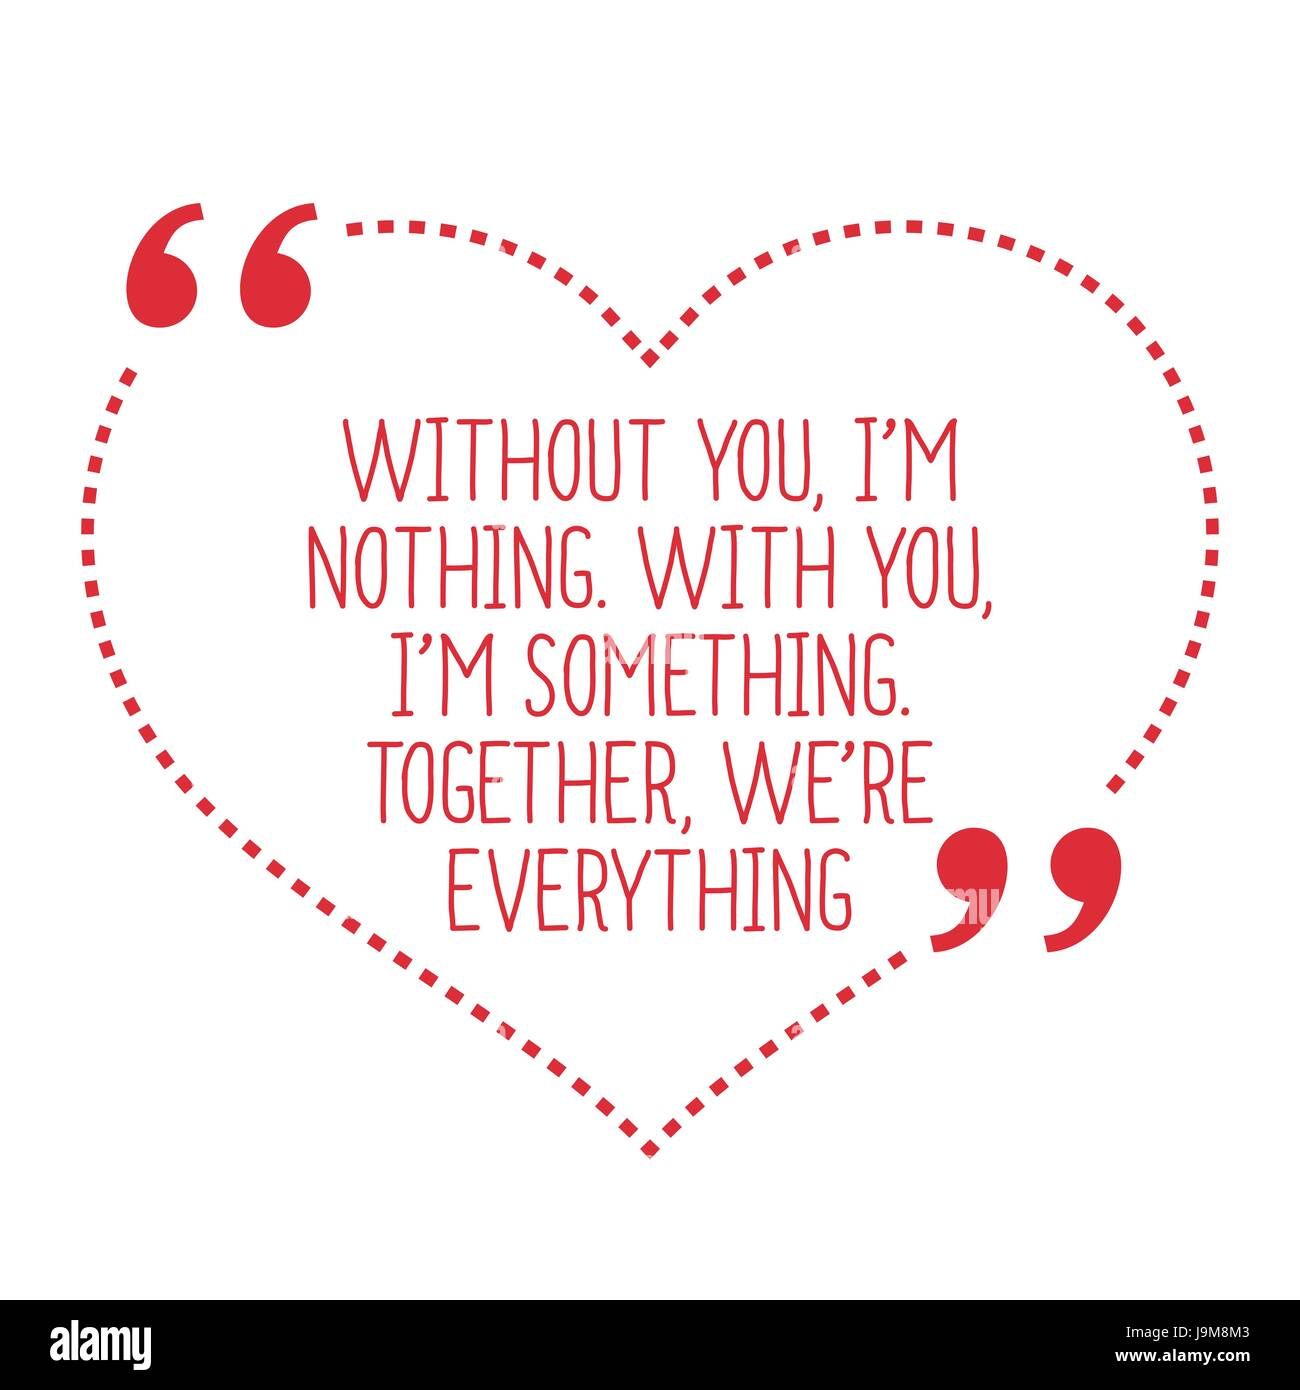 Love Quot Funny Love Quotewithout You I'm Nothingwith You I'm